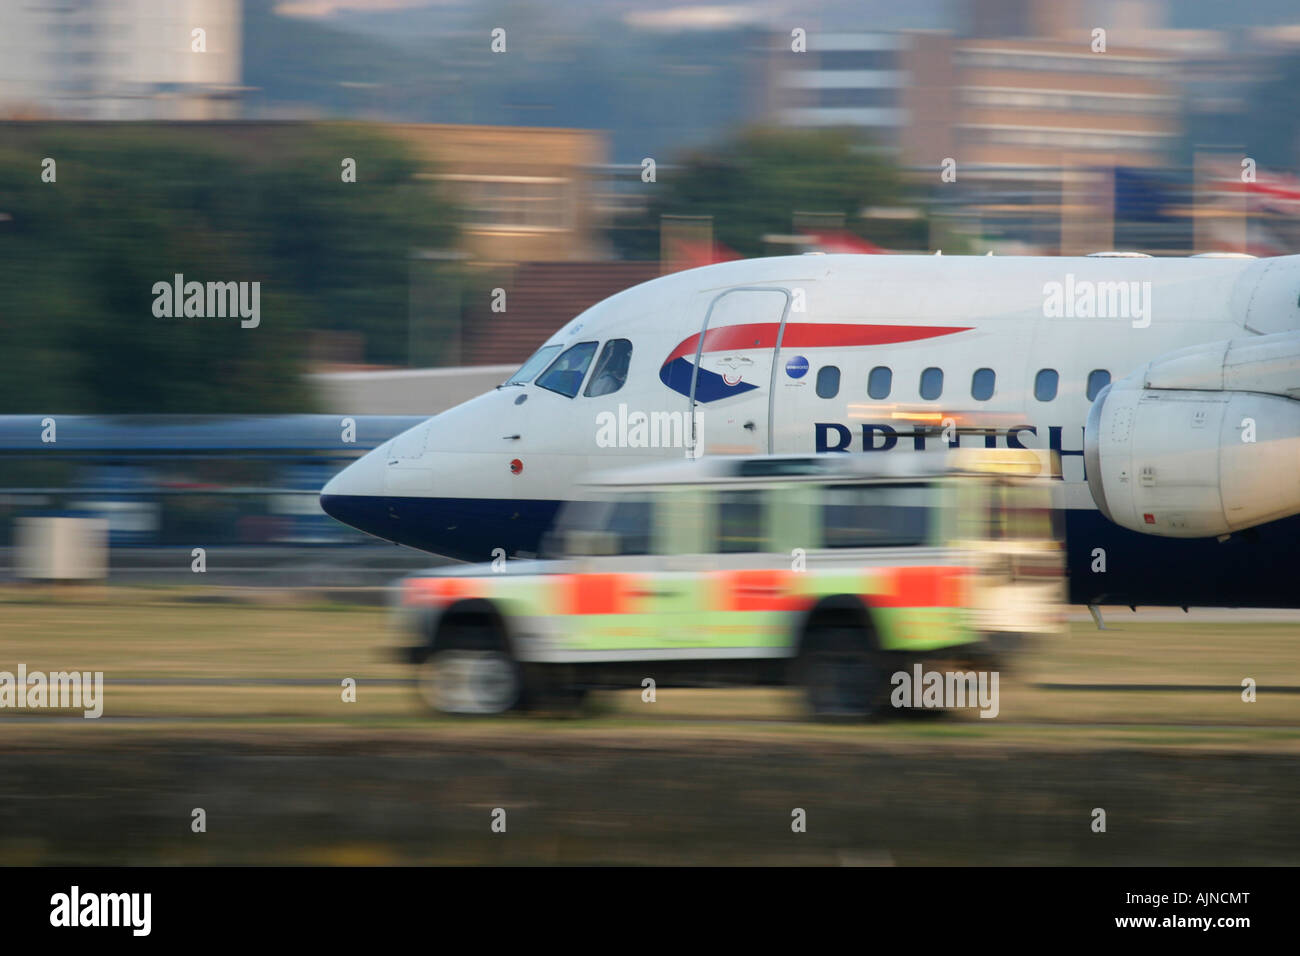 British Airways commercial jet passing behind ground crew Land Rover during take off London City Airport, England, - Stock Image